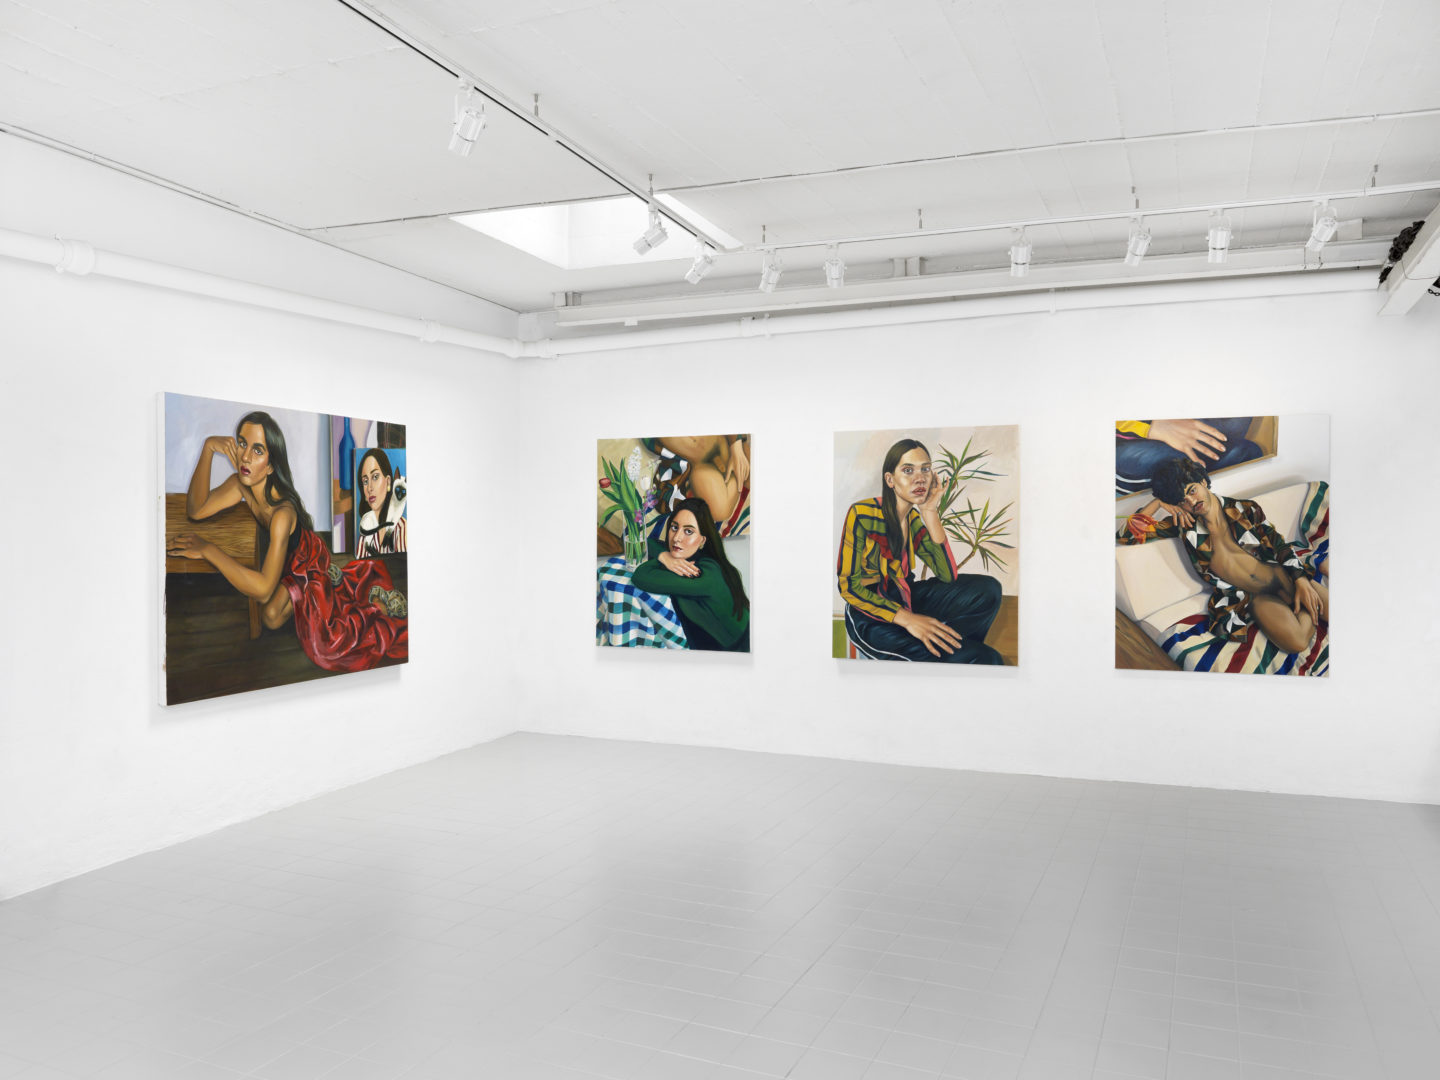 """Exhibition View Chloe Wise """"Coast Unclear Seeks Rained Parade"""" at Galerie Sébastien Bertrand / Photo: Annik Wetter / Courtesy: the artist and the gallery"""